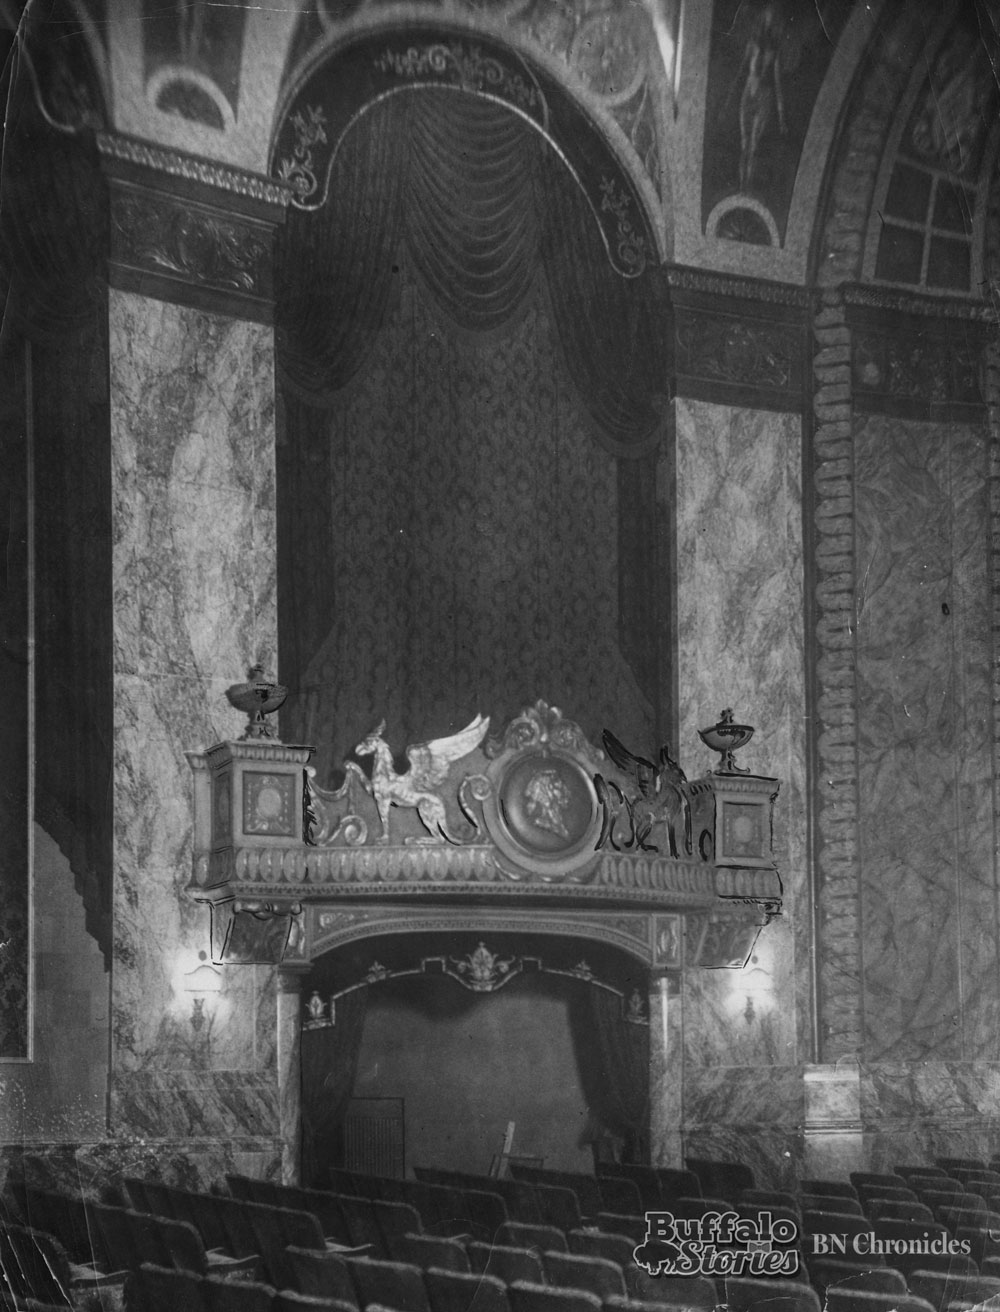 Inside the Shea's Seneca just before opening night, 1930. Buffalo News archives